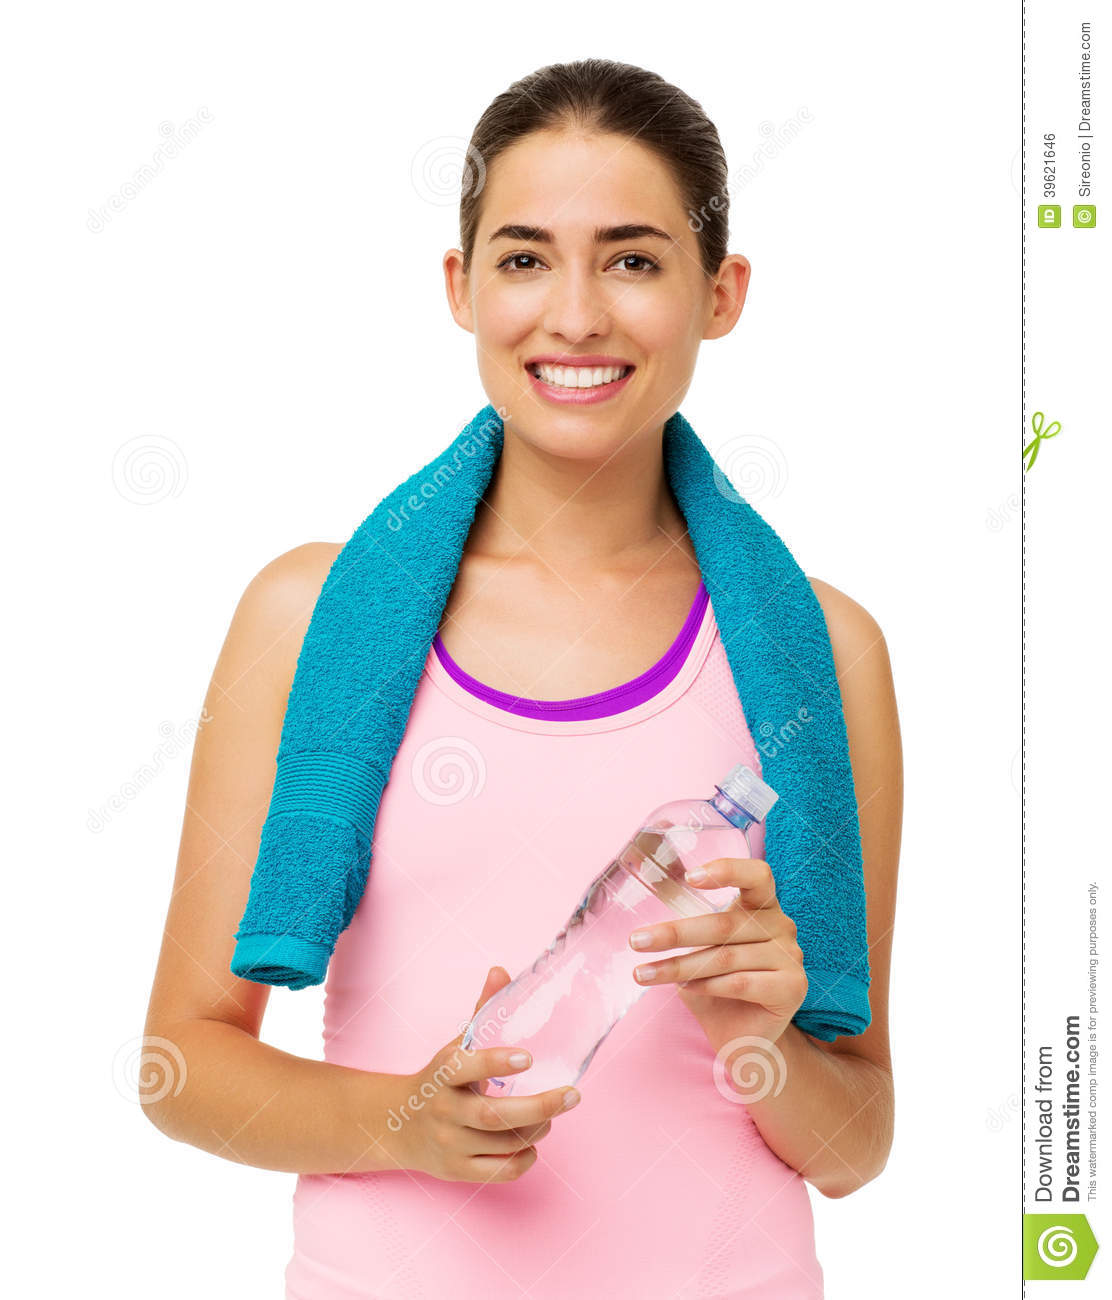 Woman Standing In Towel And Looking Back At Camera Stock Image  Cartoondealercom -5077